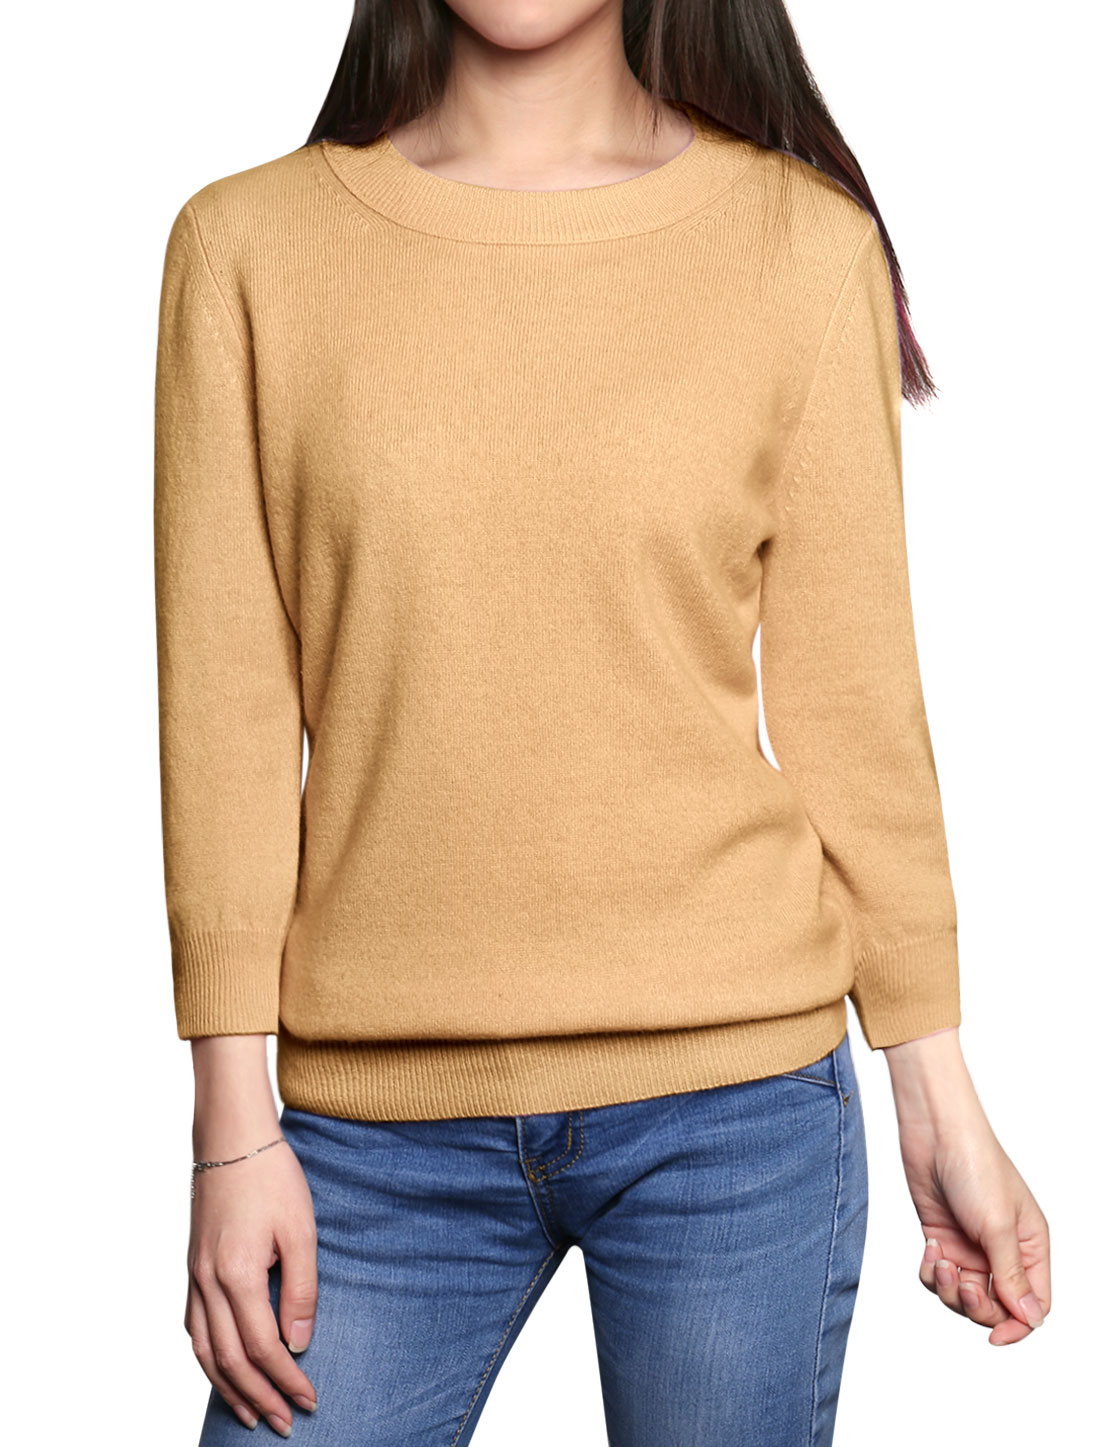 Ladies Classic Crew Neck Cashmere w 3/4 Sleeves Brown XL